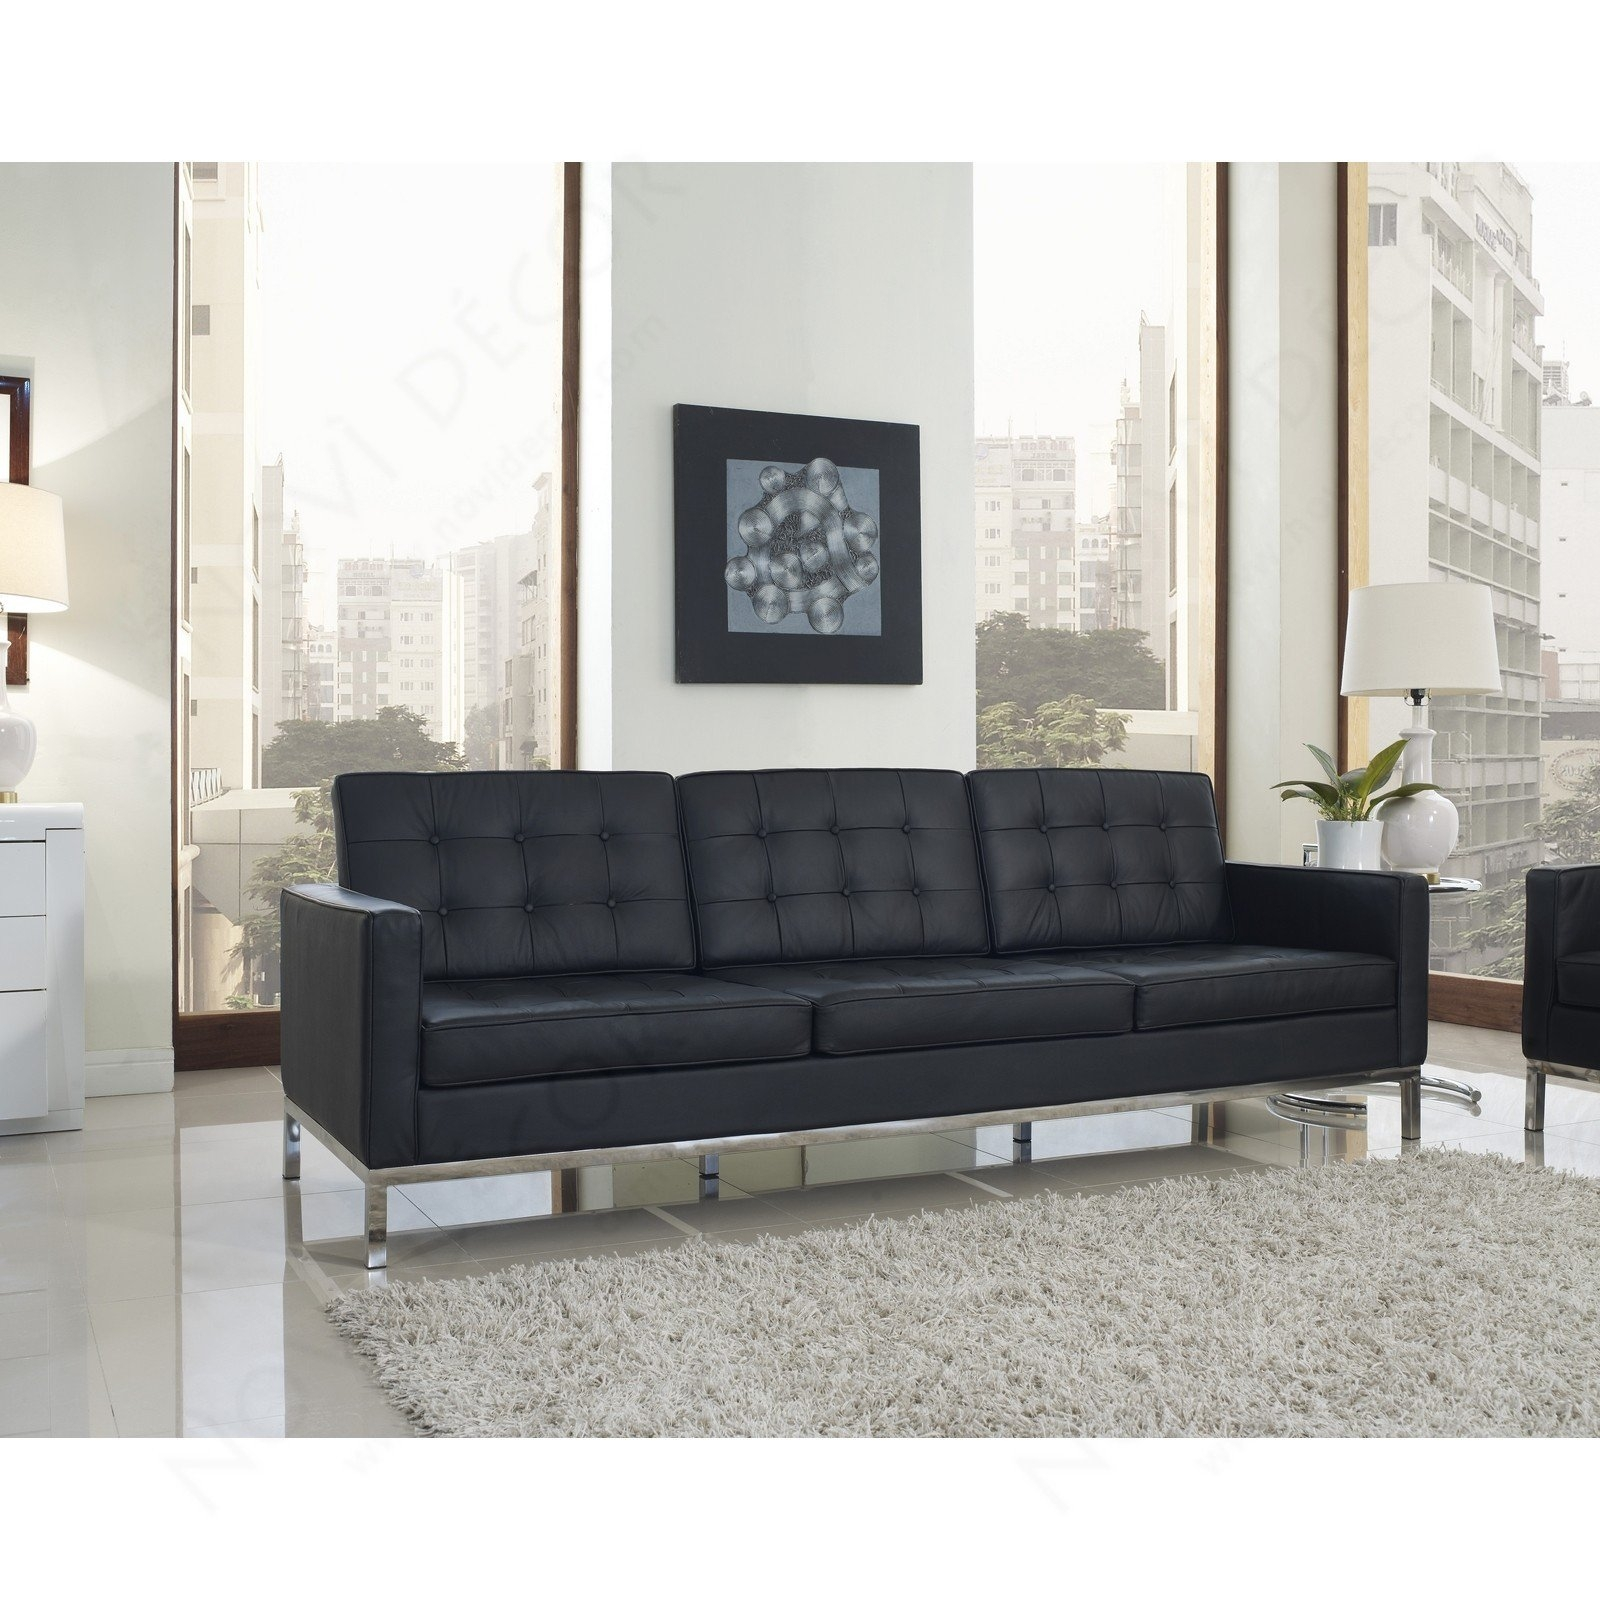 Florence Style Sofa Multiple Colors Designer Reproduction Regarding Florence Medium Sofas (View 2 of 15)